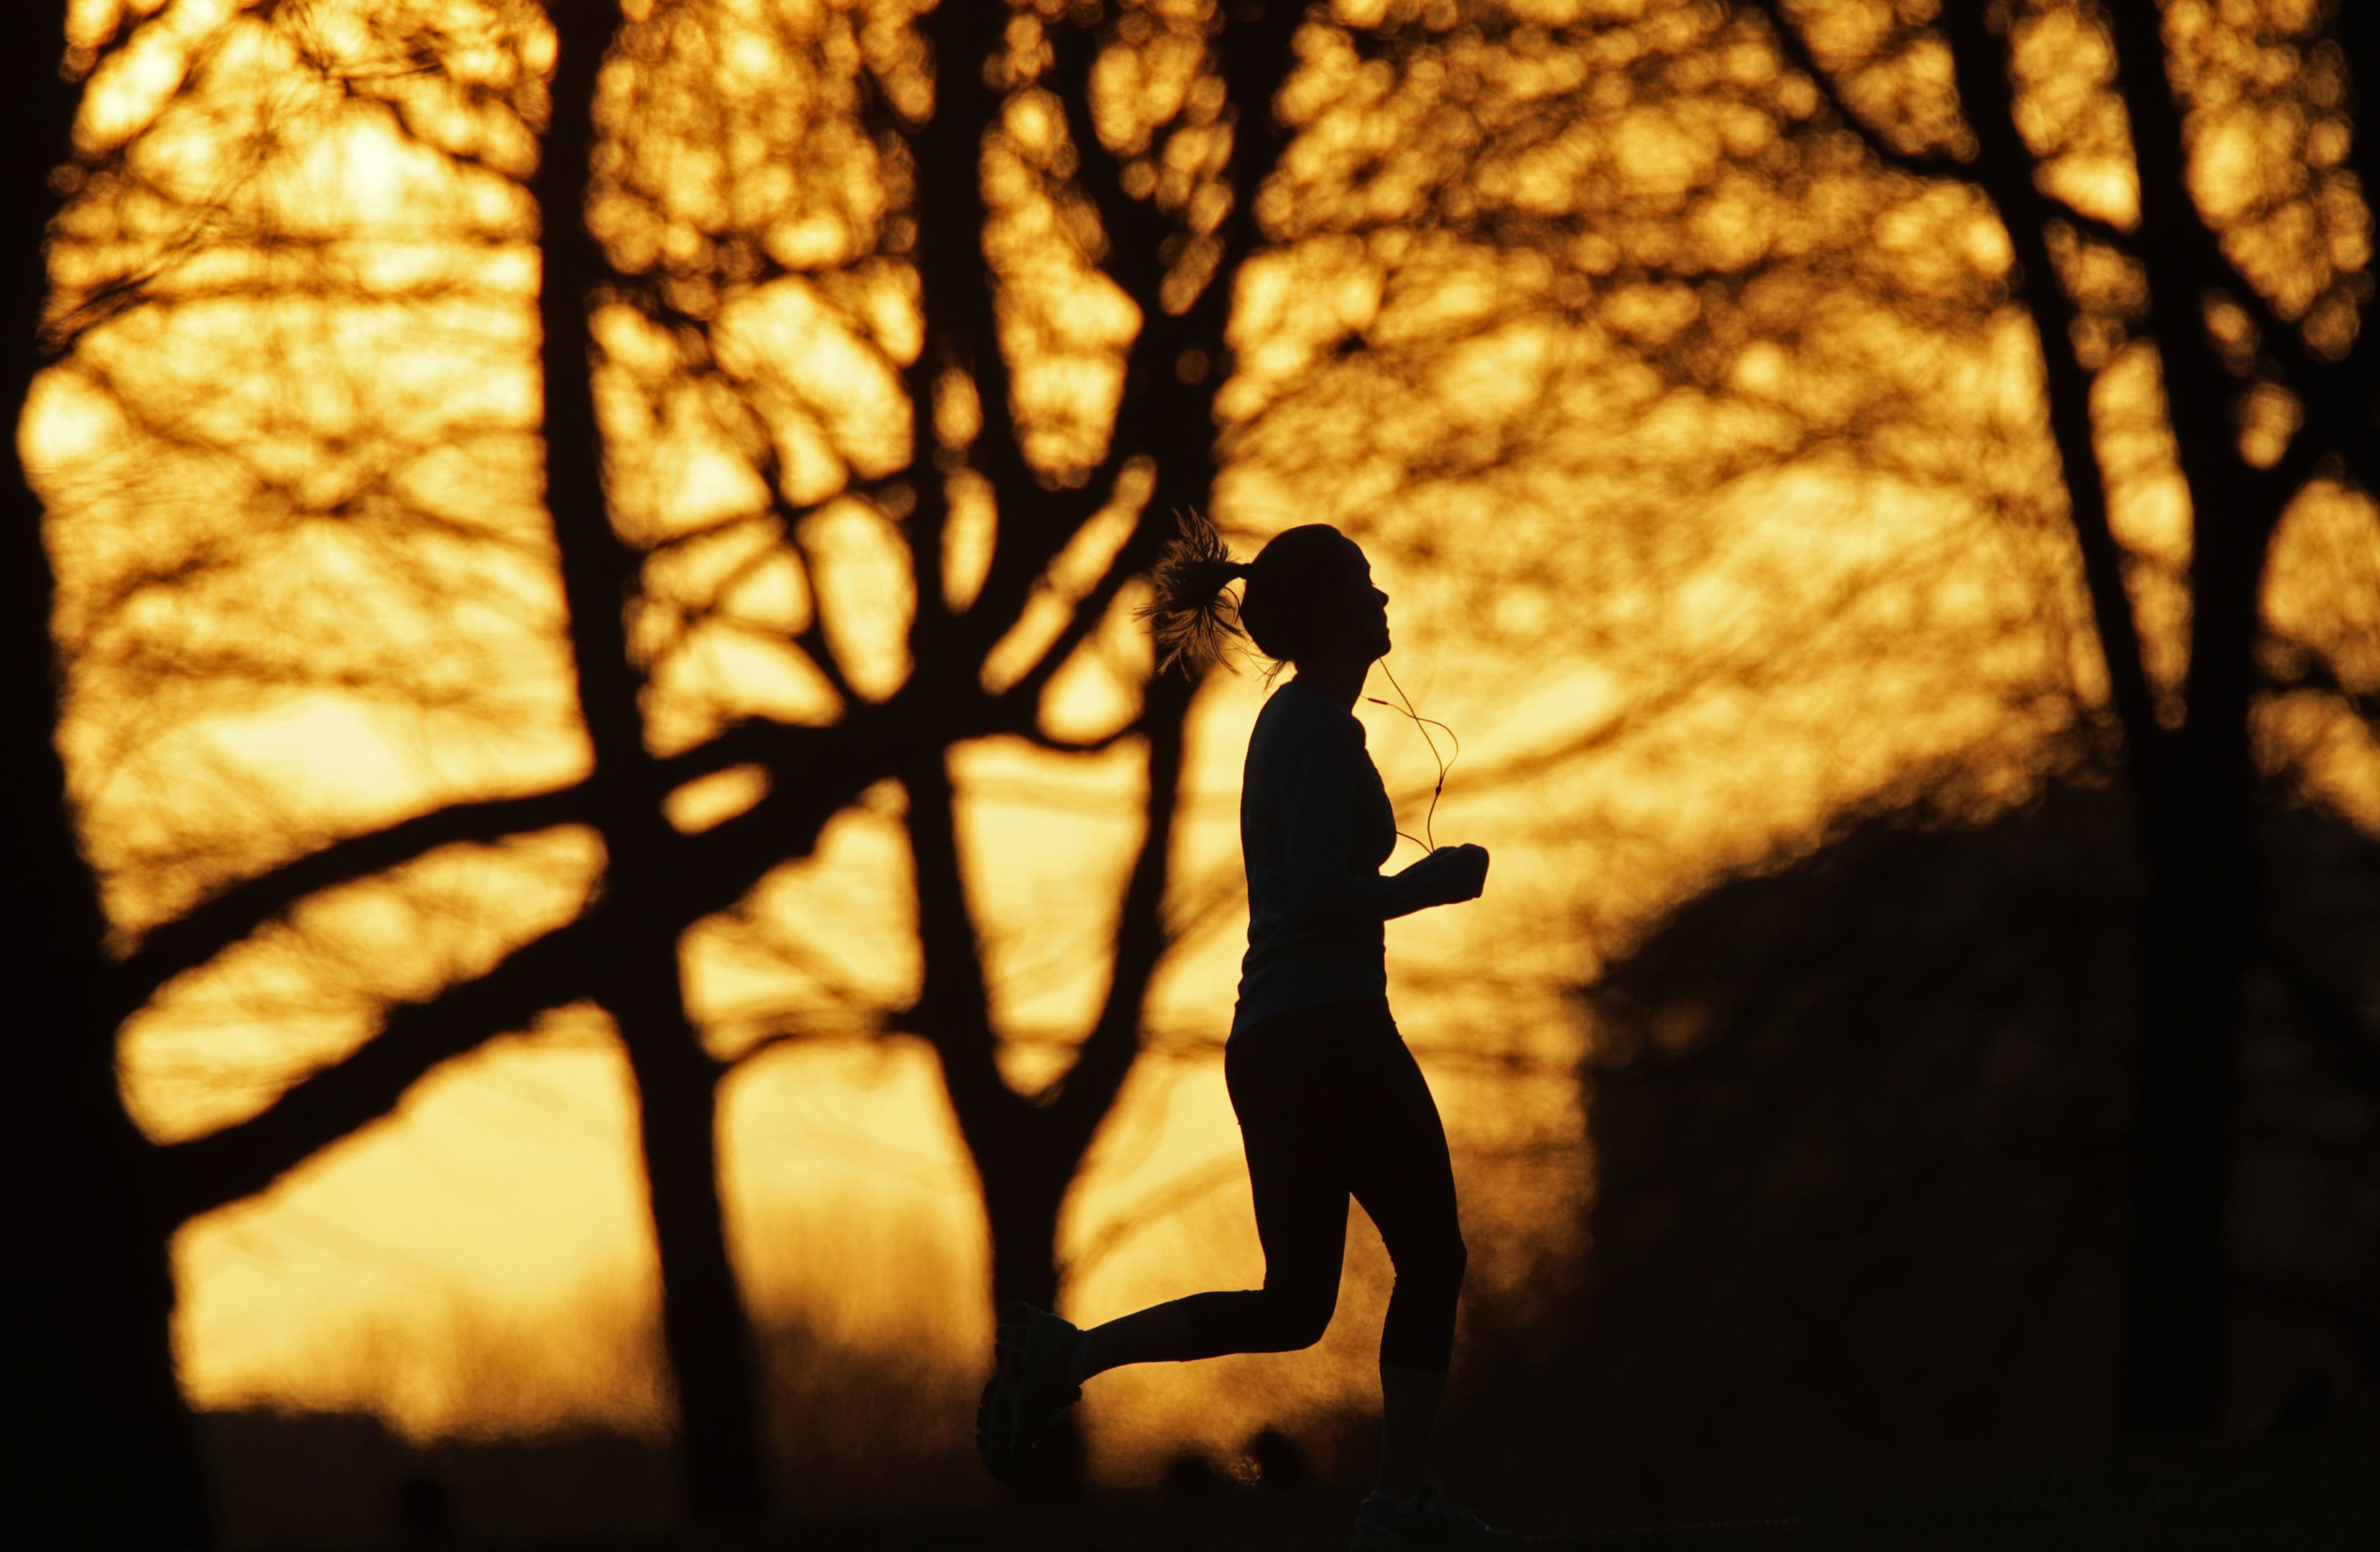 The survey of more than 2,000 people across the UK has found that 25% have shied away from physical activity because of pain in their joints. (Yui Mok/PA Wire)